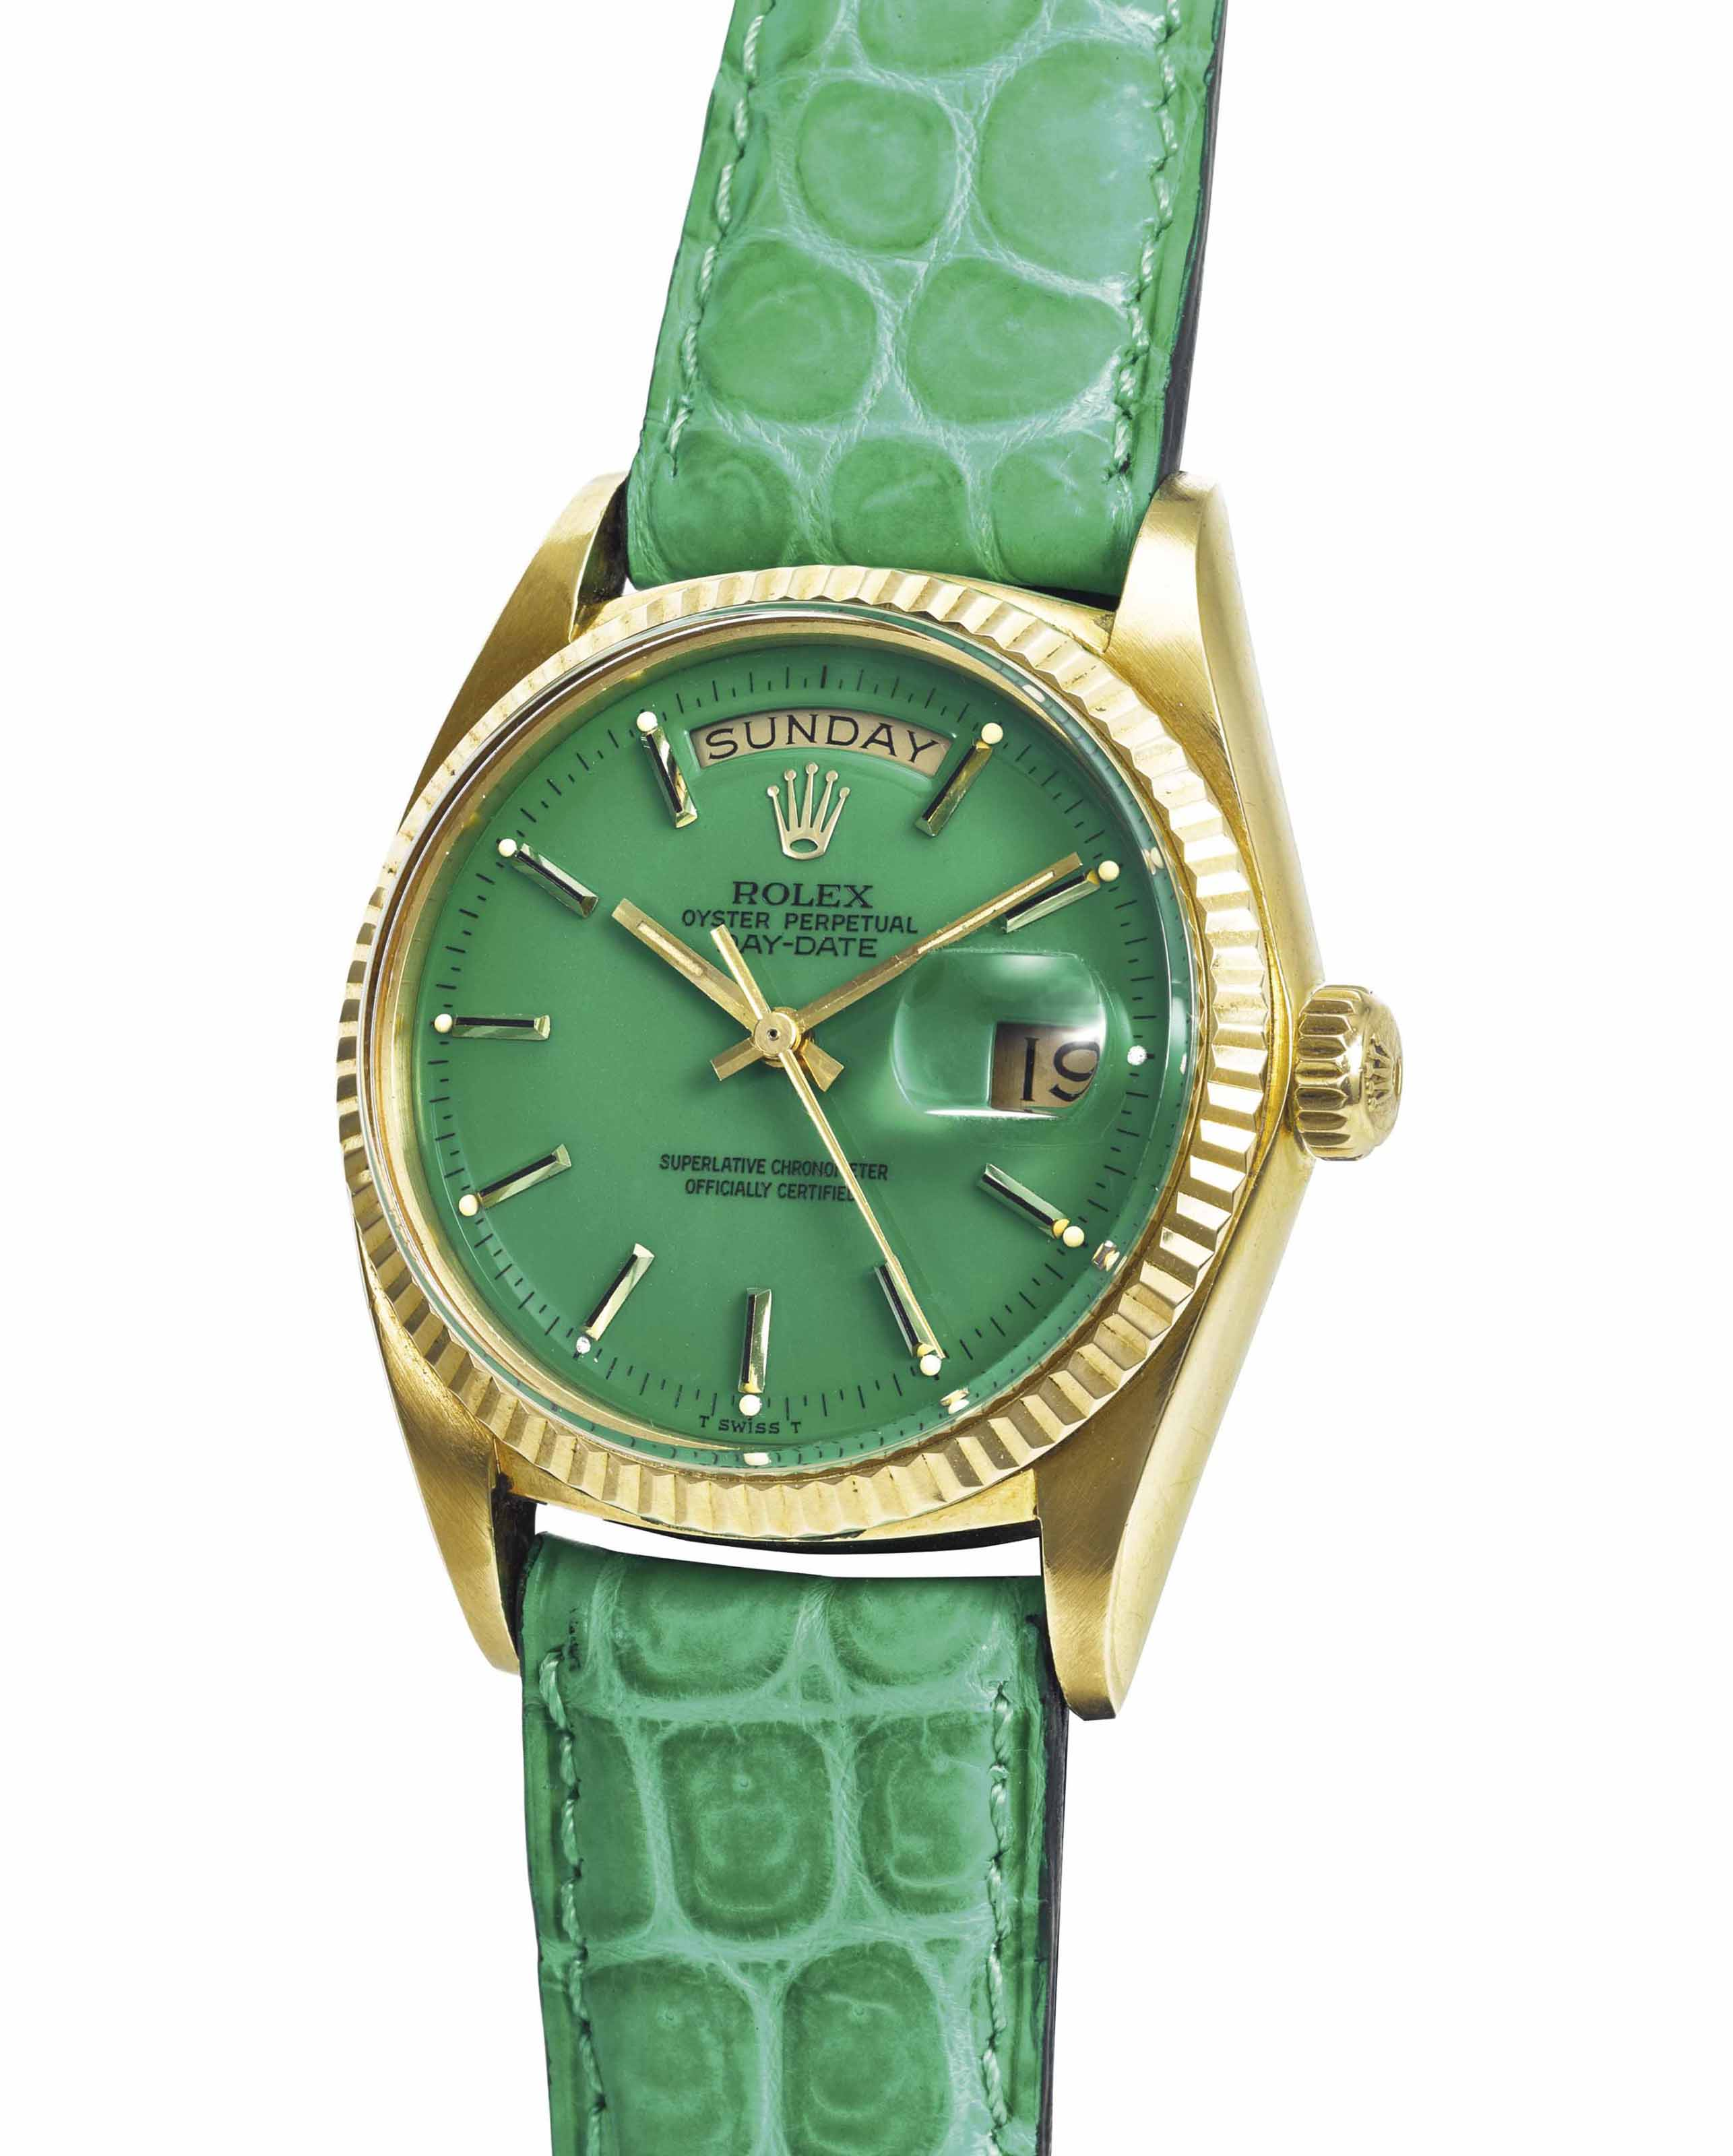 ROLEX A VERY FINE AND RARE 18K GOLD AUTOMATIC WRISTWATCH WIT...